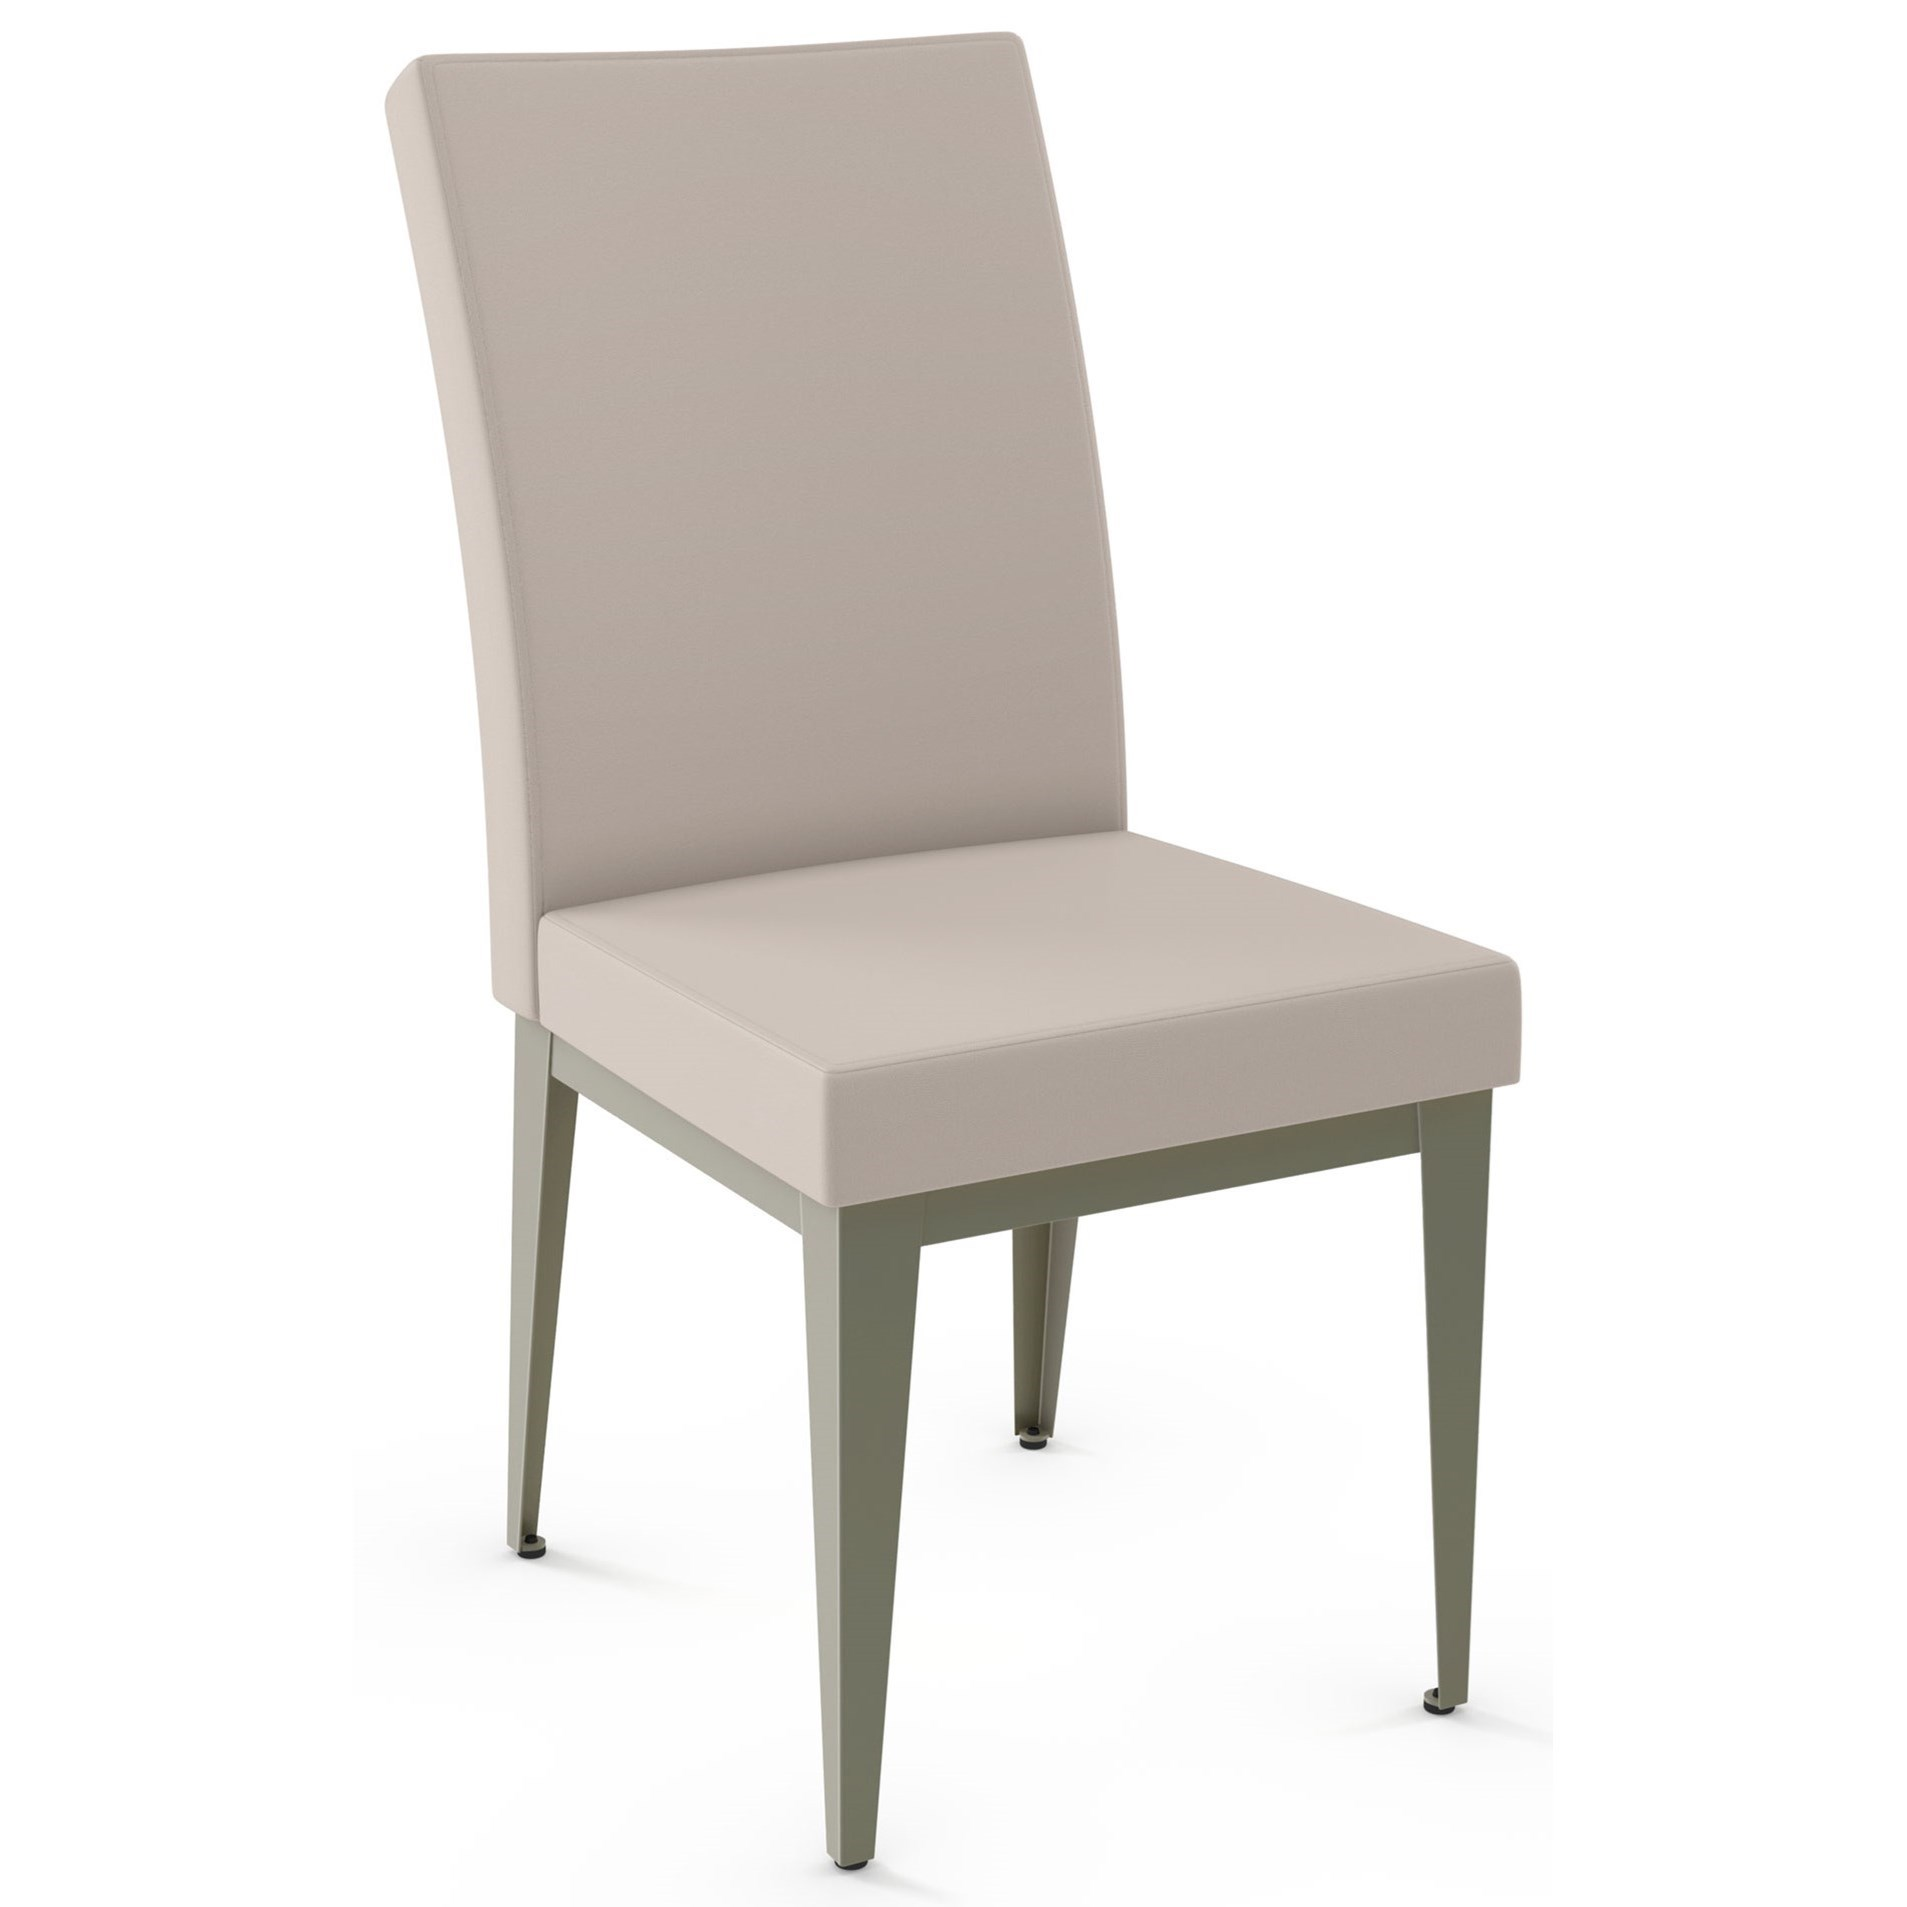 Customizable Alto Chair